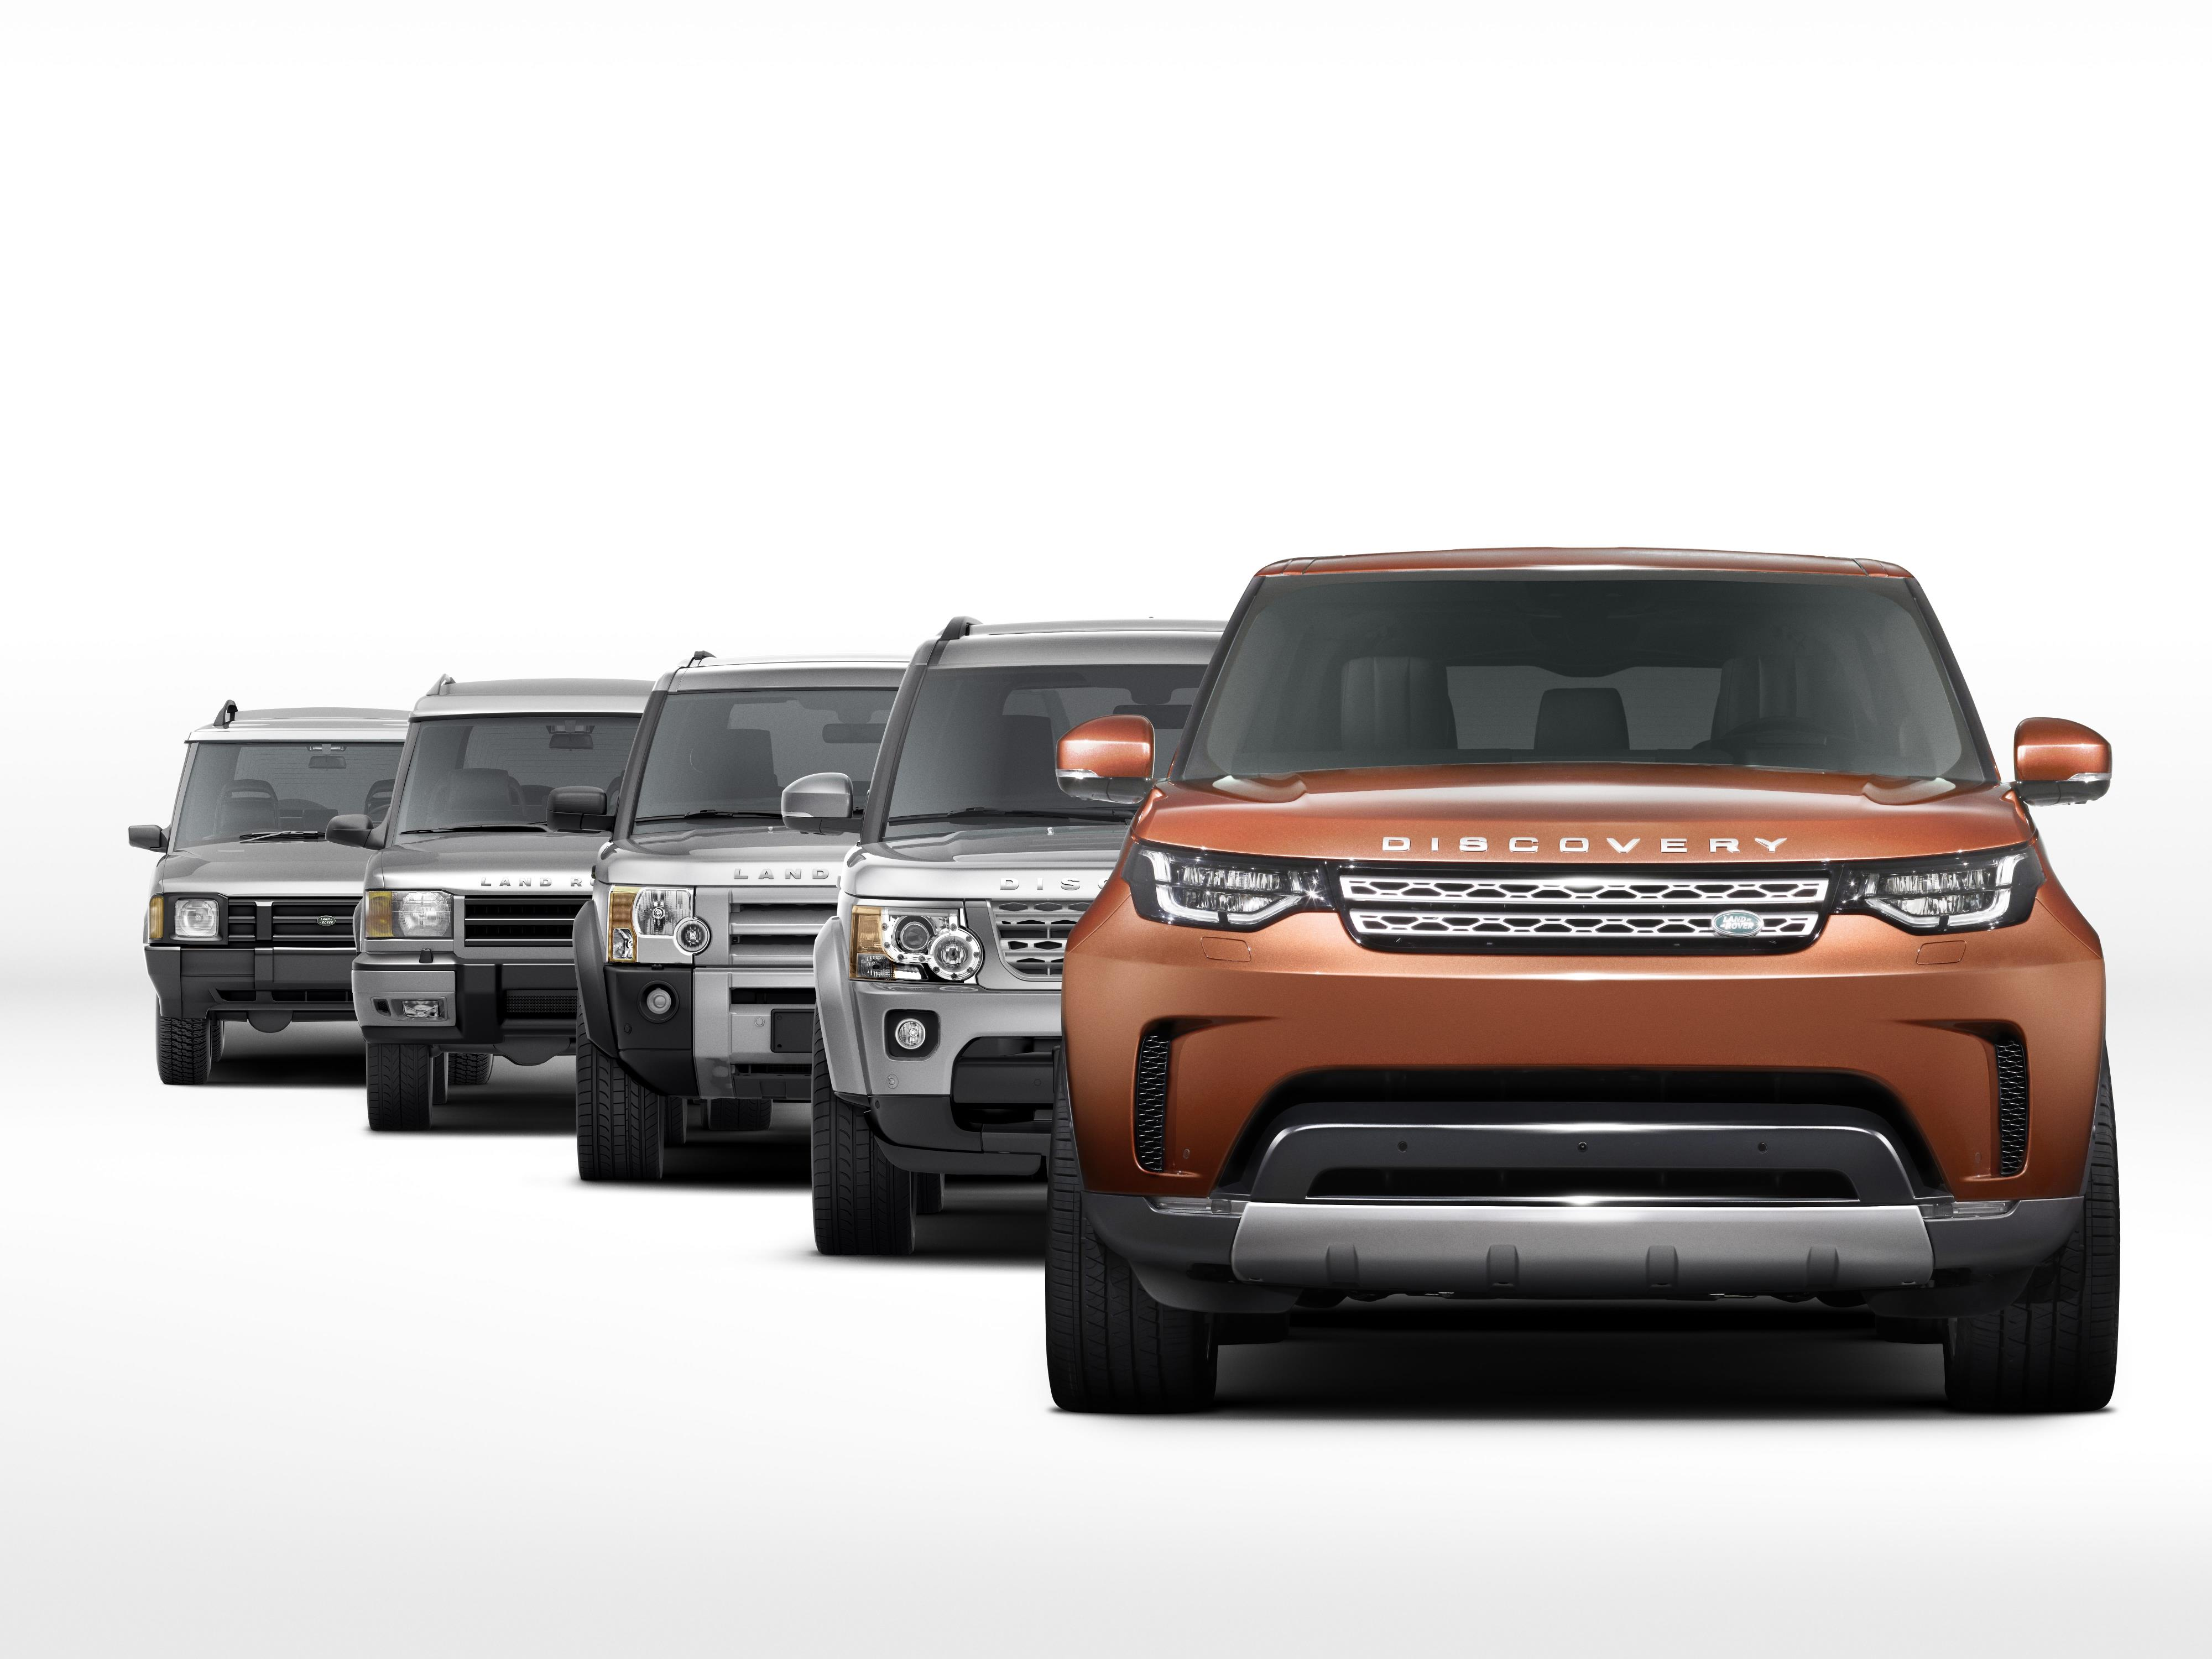 luxury en rover official suv and cars land mena index design landrover site british